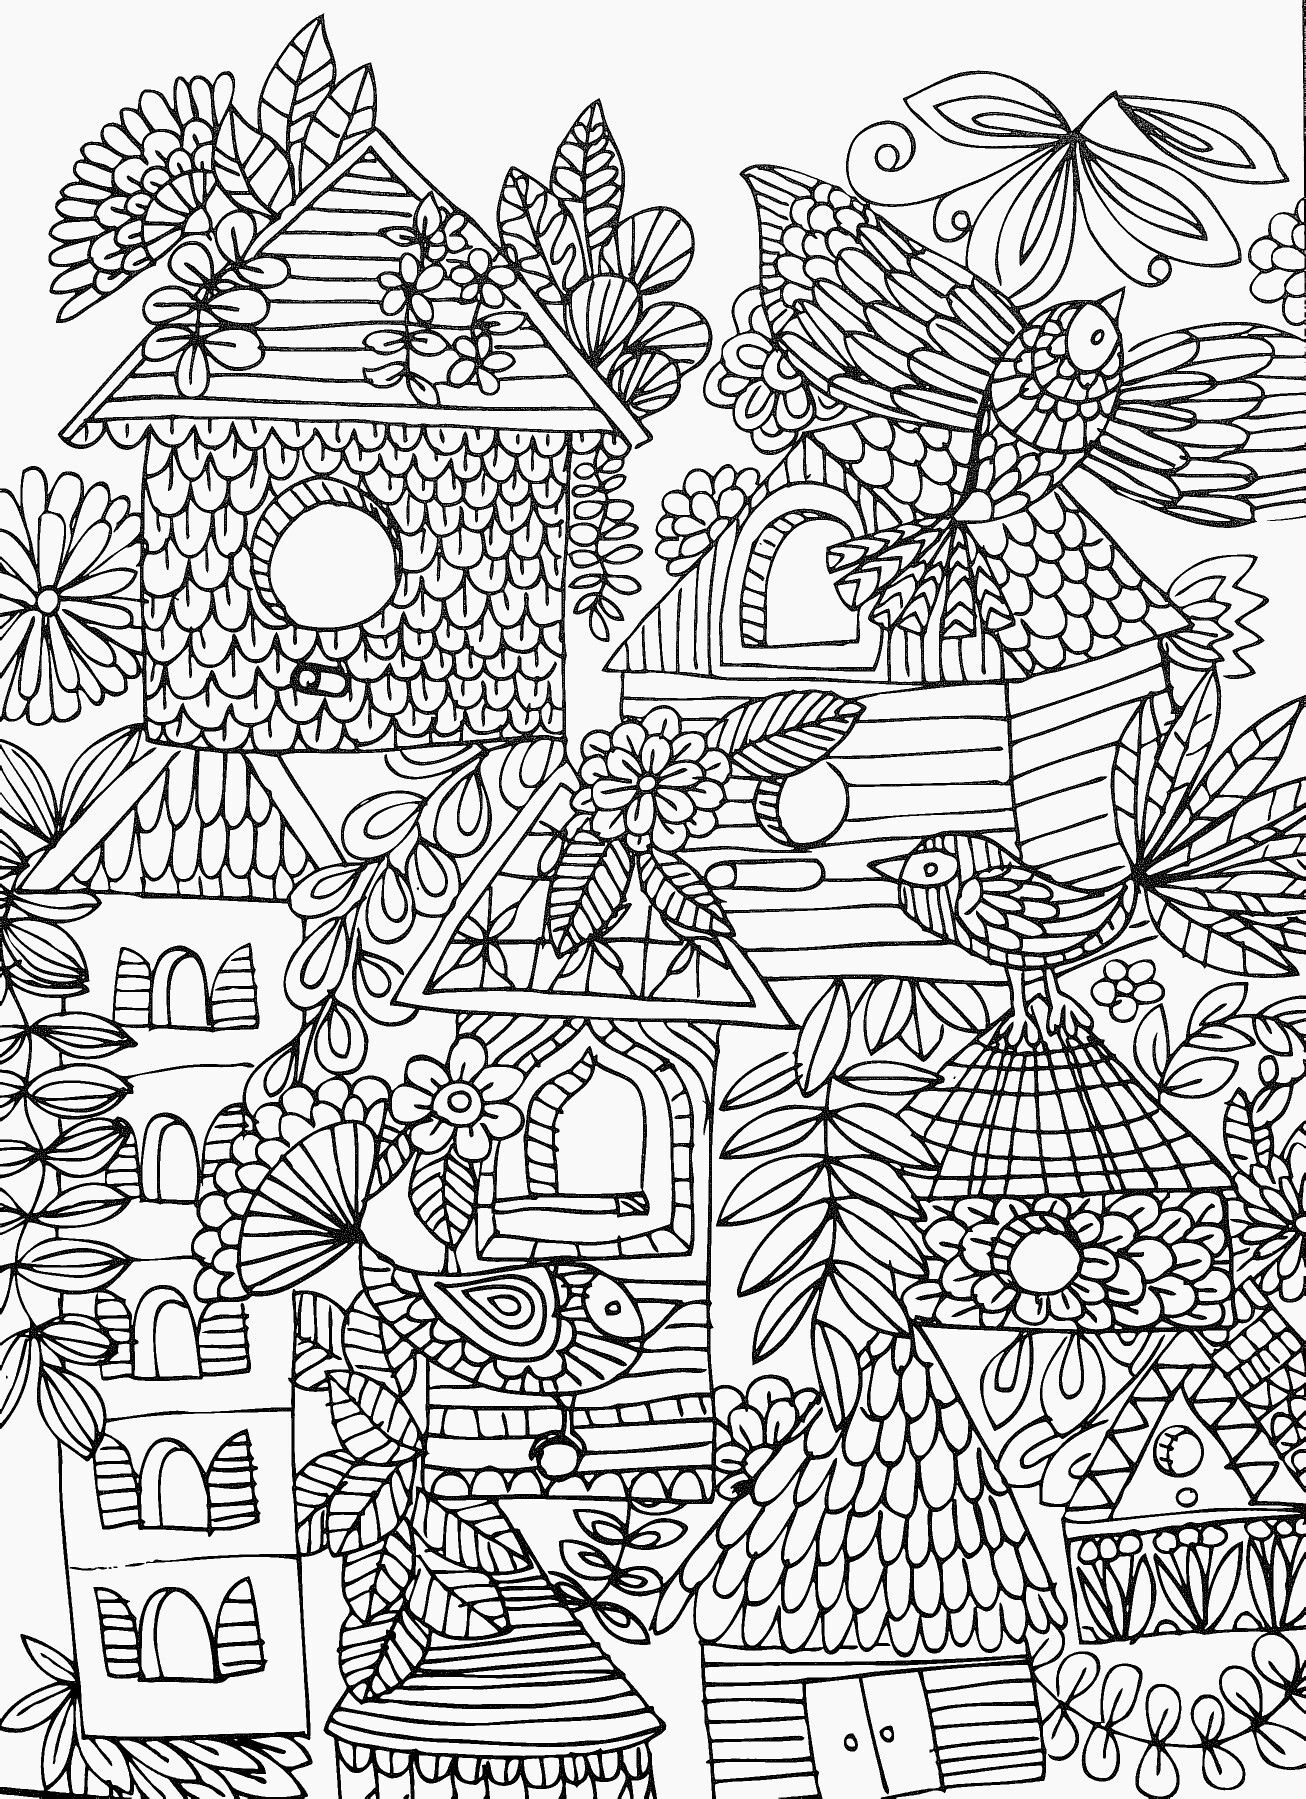 Fun Amp Funky Birds Amp Birdhouses Adult Coloring Page